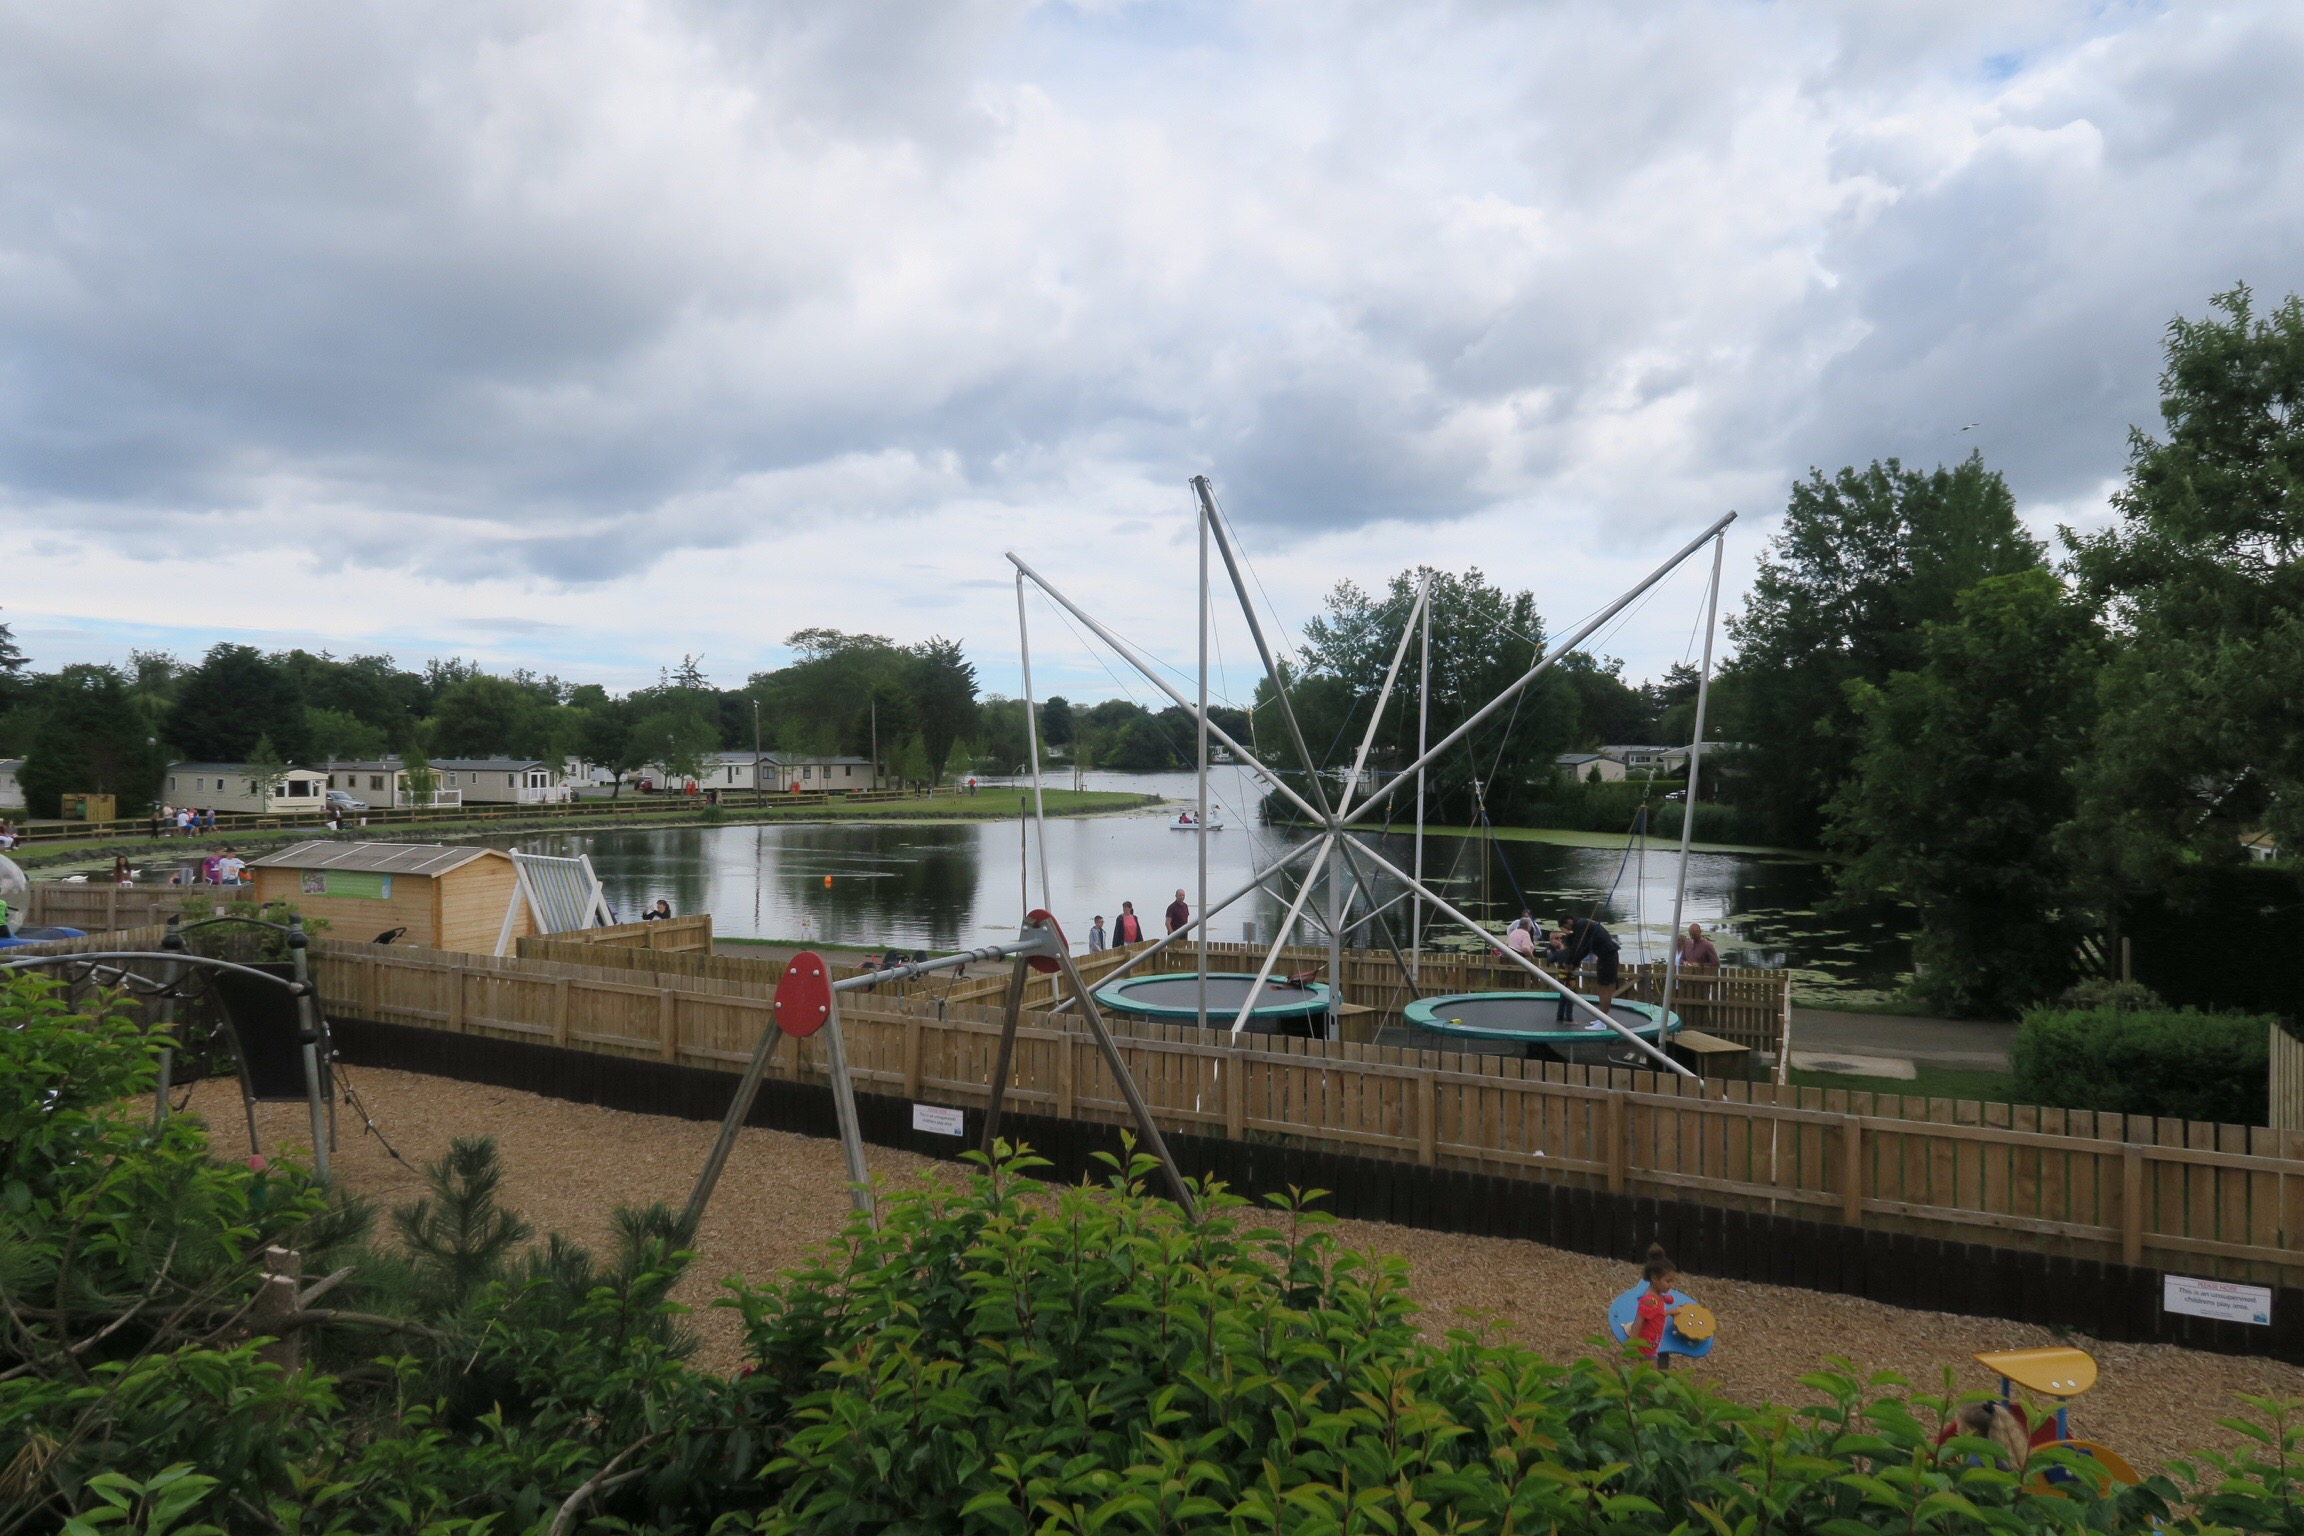 One of the play areas at Haggerston Castle - a playground and two trampolines next to a boating lake.